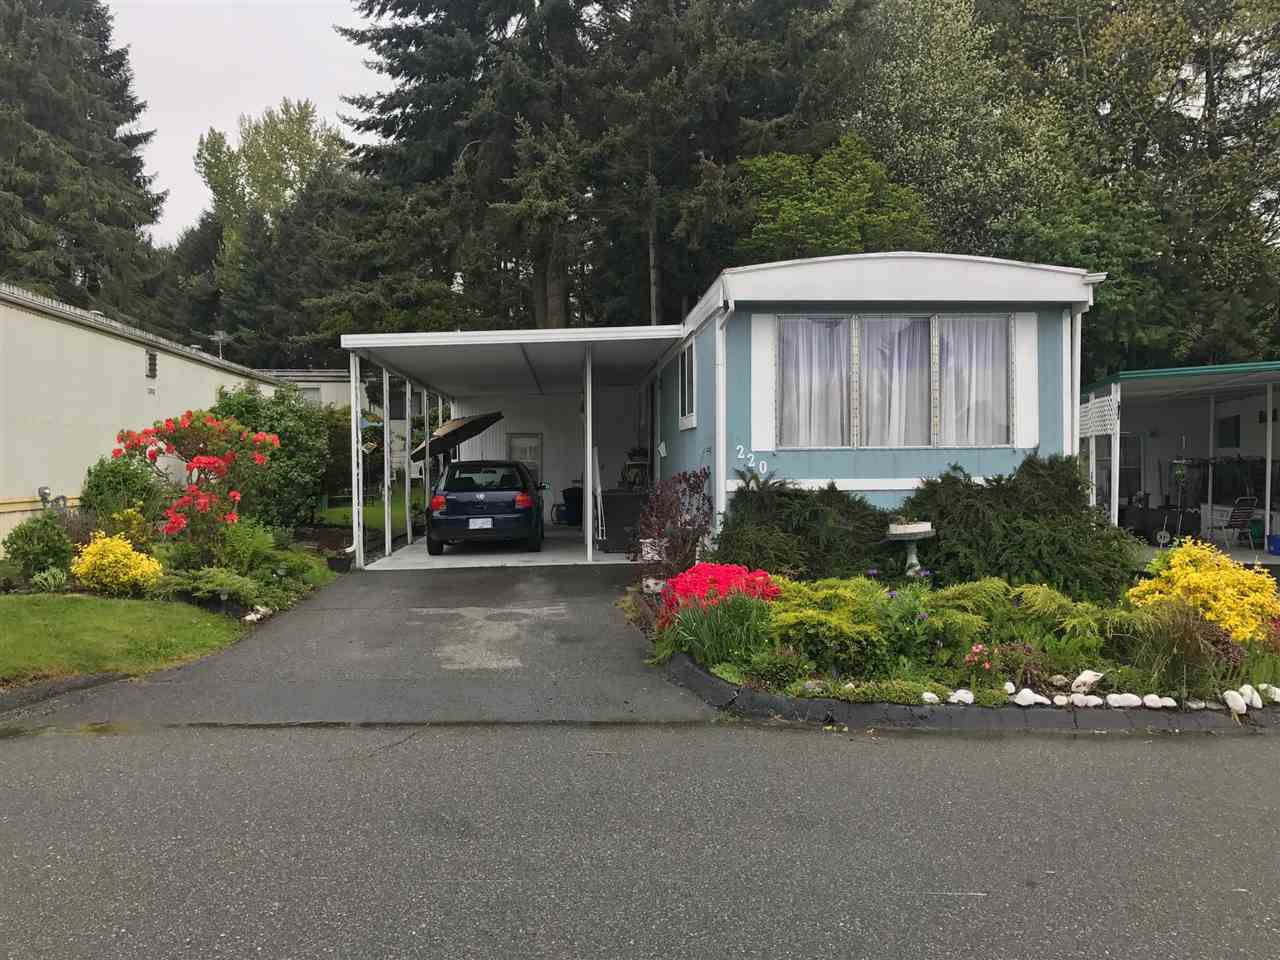 """Main Photo: 220 1840 160 Street in Surrey: King George Corridor Manufactured Home for sale in """"BREAKAWAY BAYS"""" (South Surrey White Rock)  : MLS®# R2163646"""